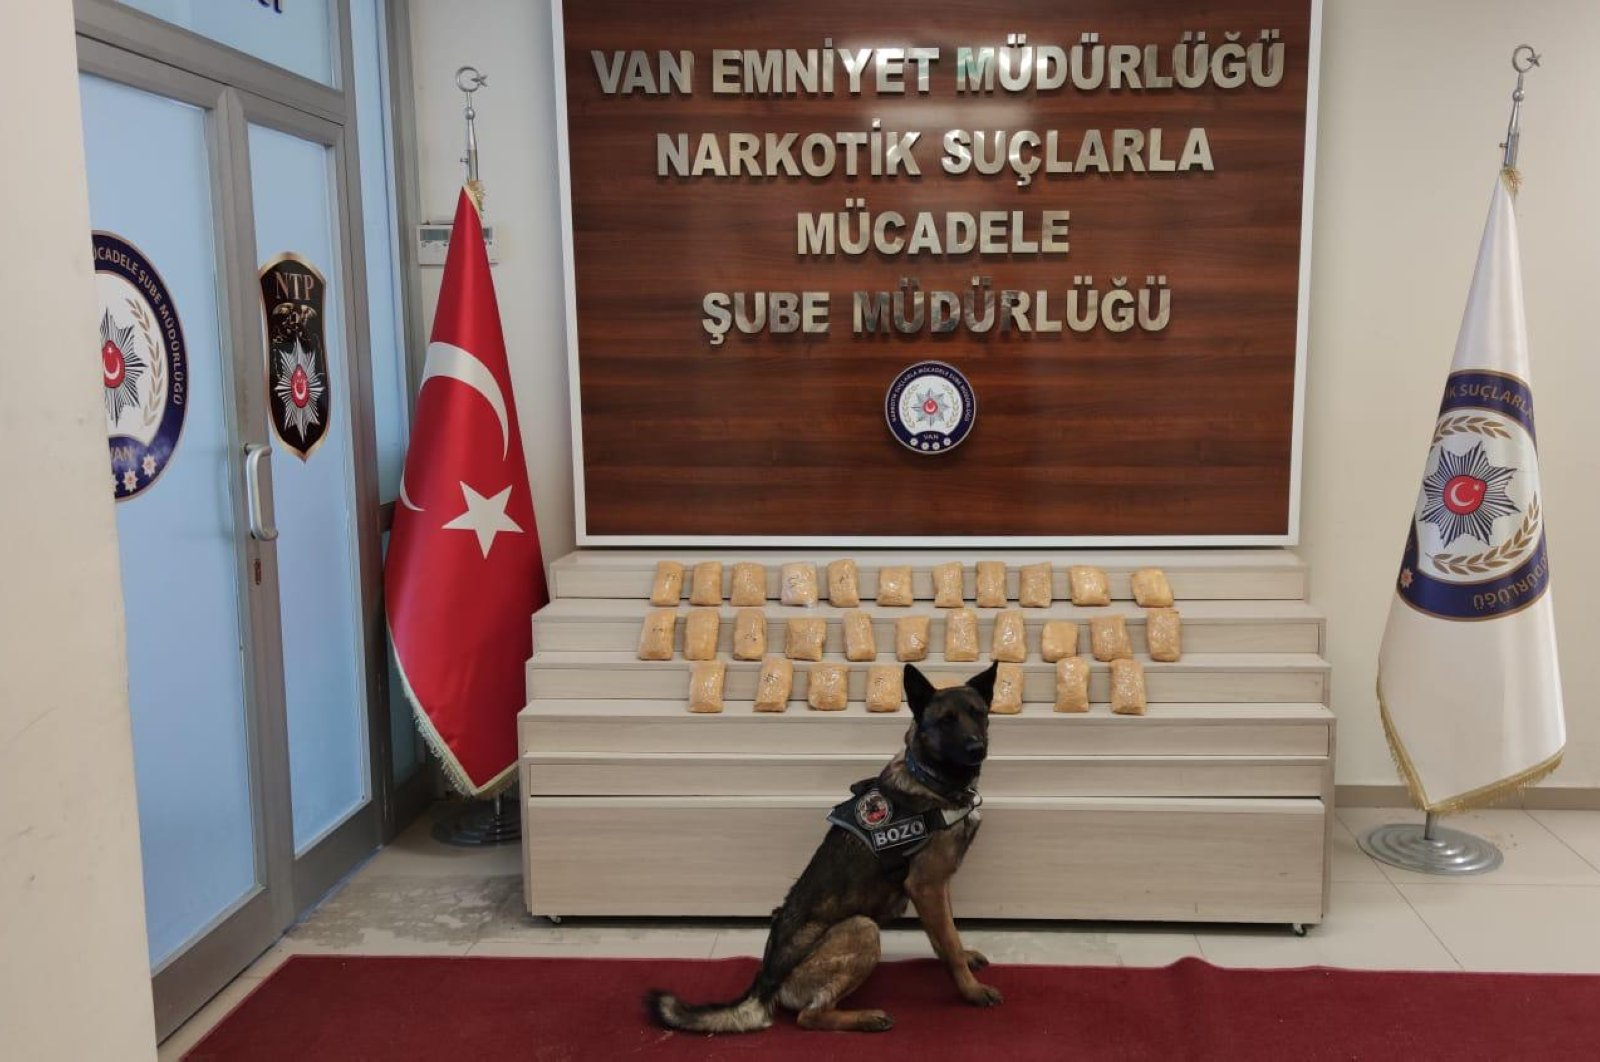 A sniffer dog poses in front of captured drugs, Friday, March 20, 2020, in Van. (AA Photo)